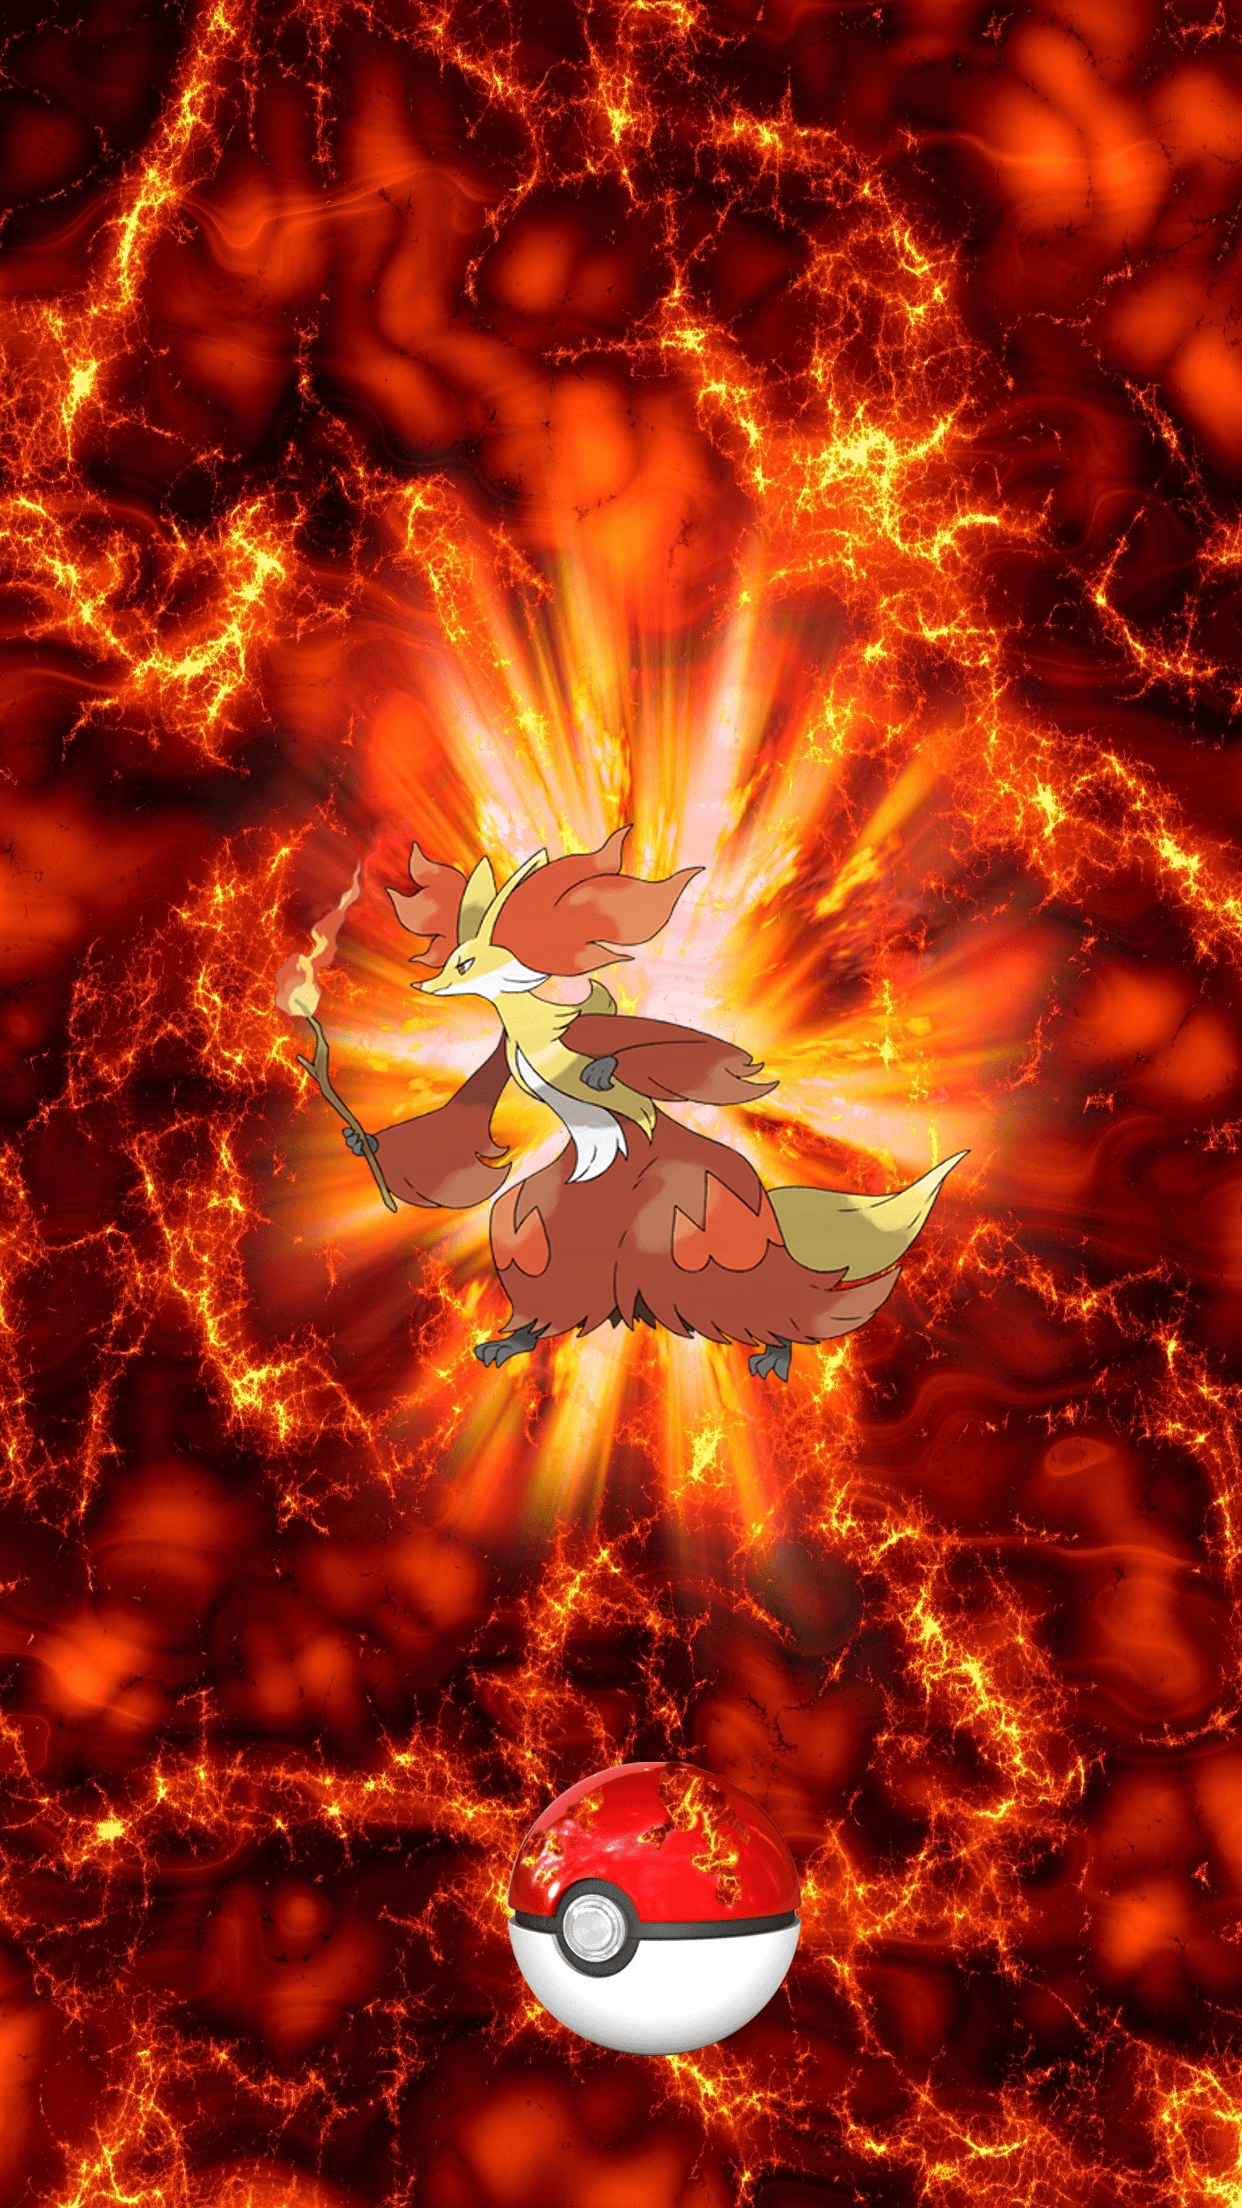 655 Fire Pokeball Delphox Mahoxy 137 140 Braixen